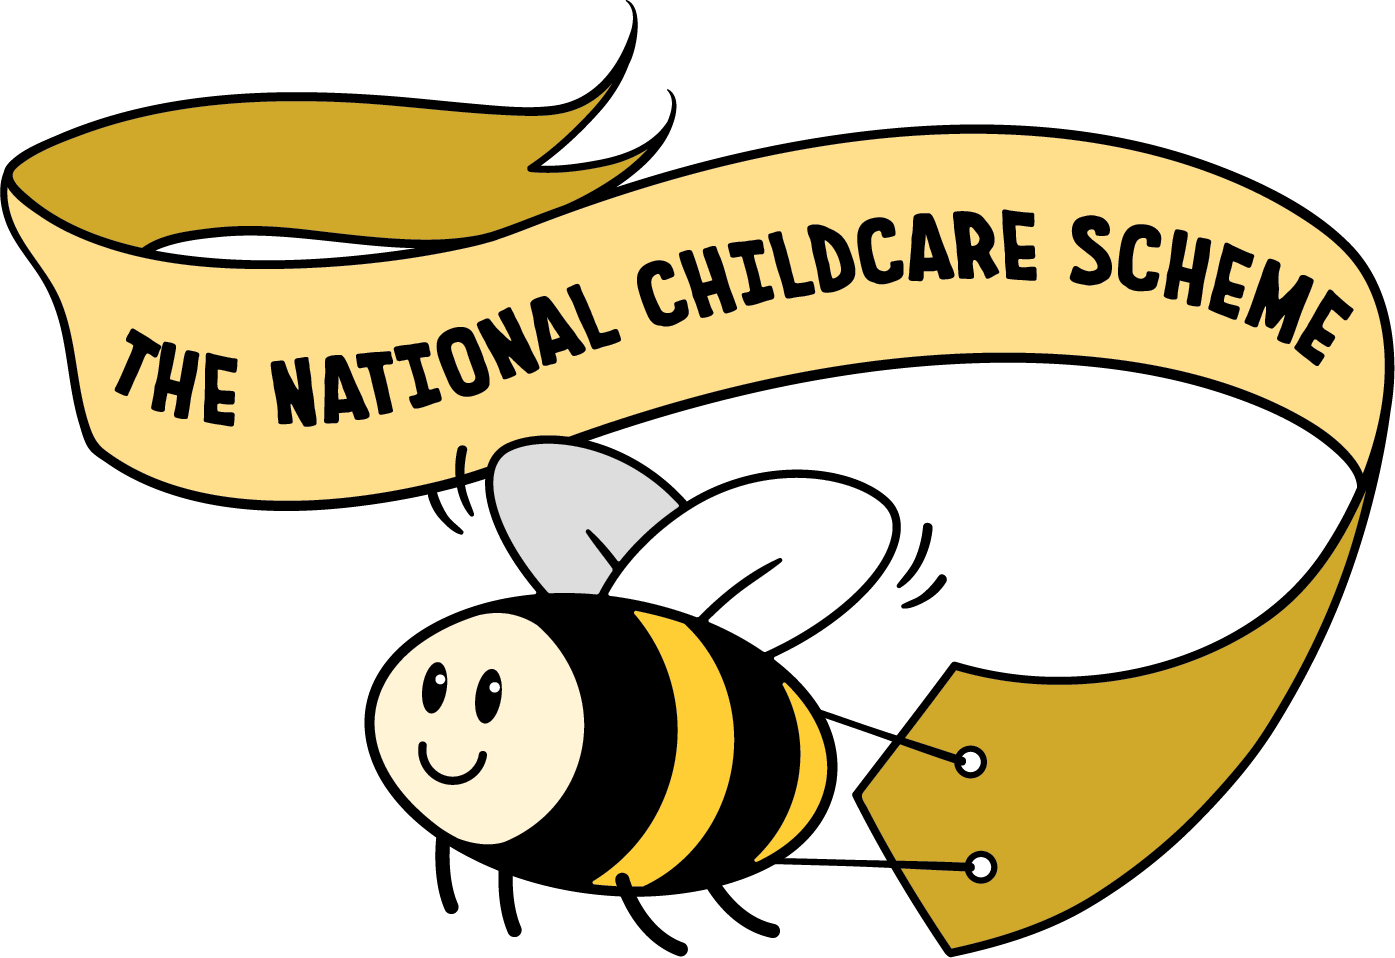 bee banner National childcare scheme